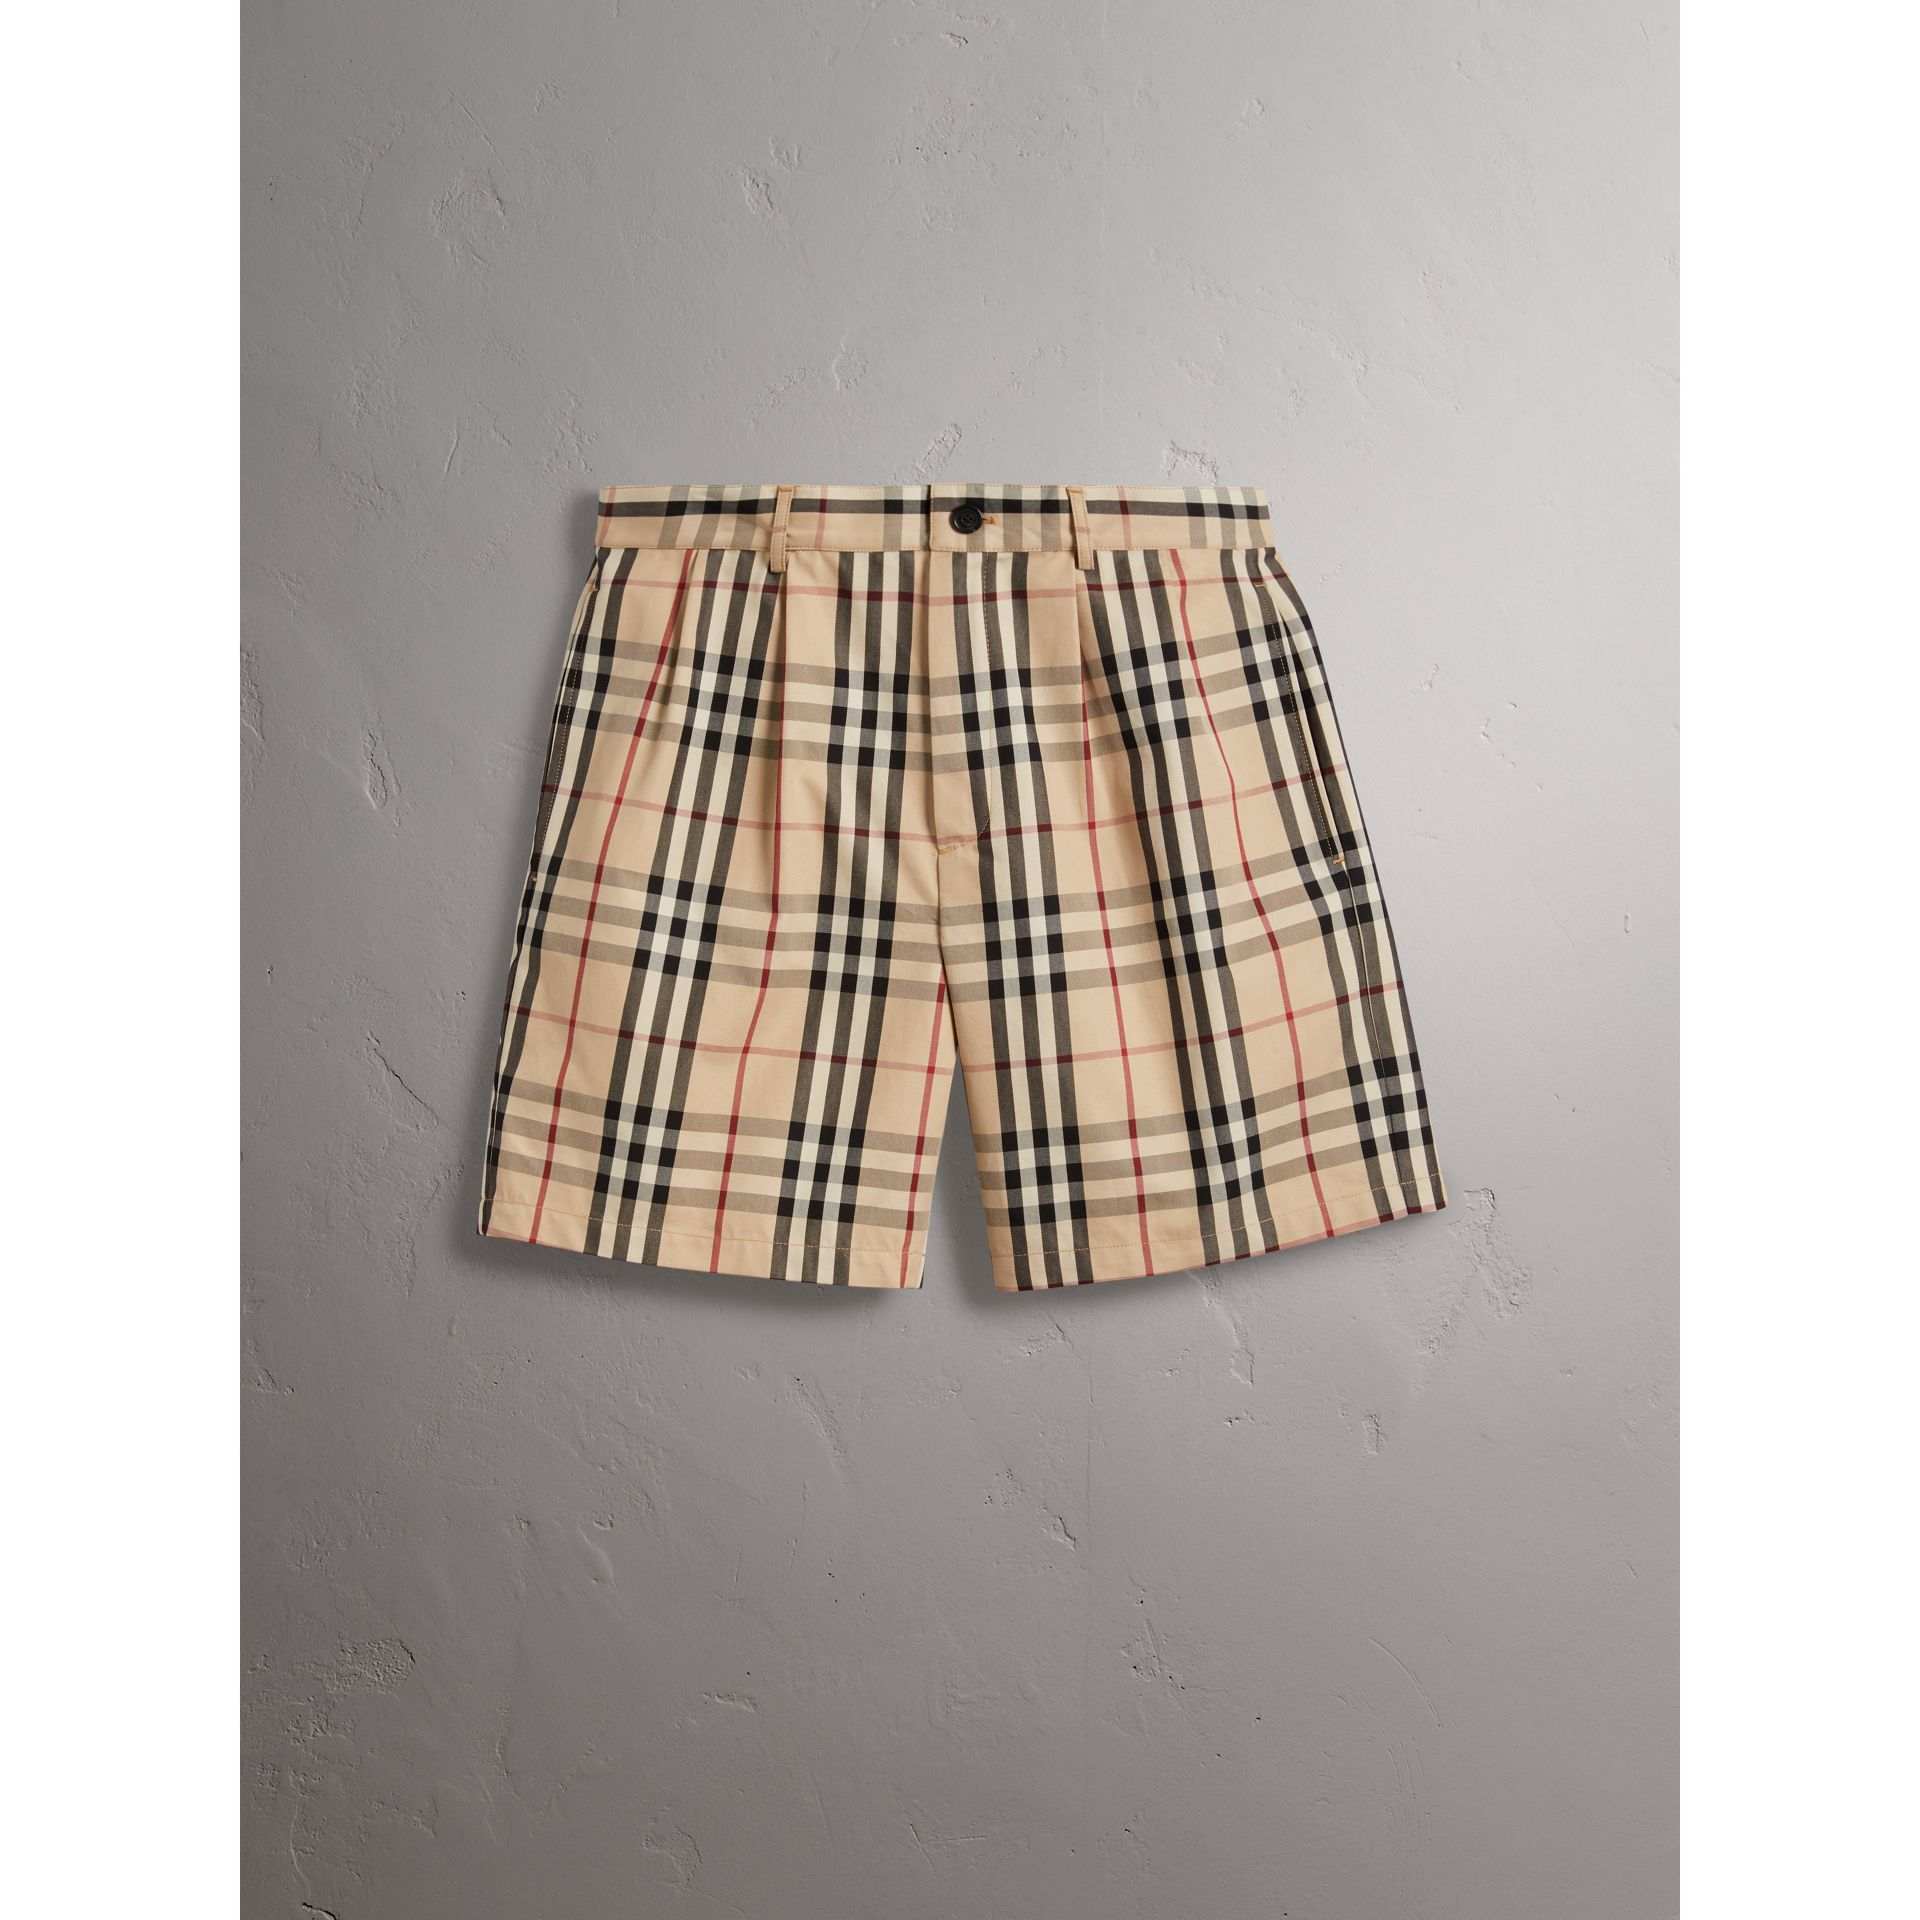 Gosha x Burberry Tailored Shorts in Honey | Burberry - gallery image 4